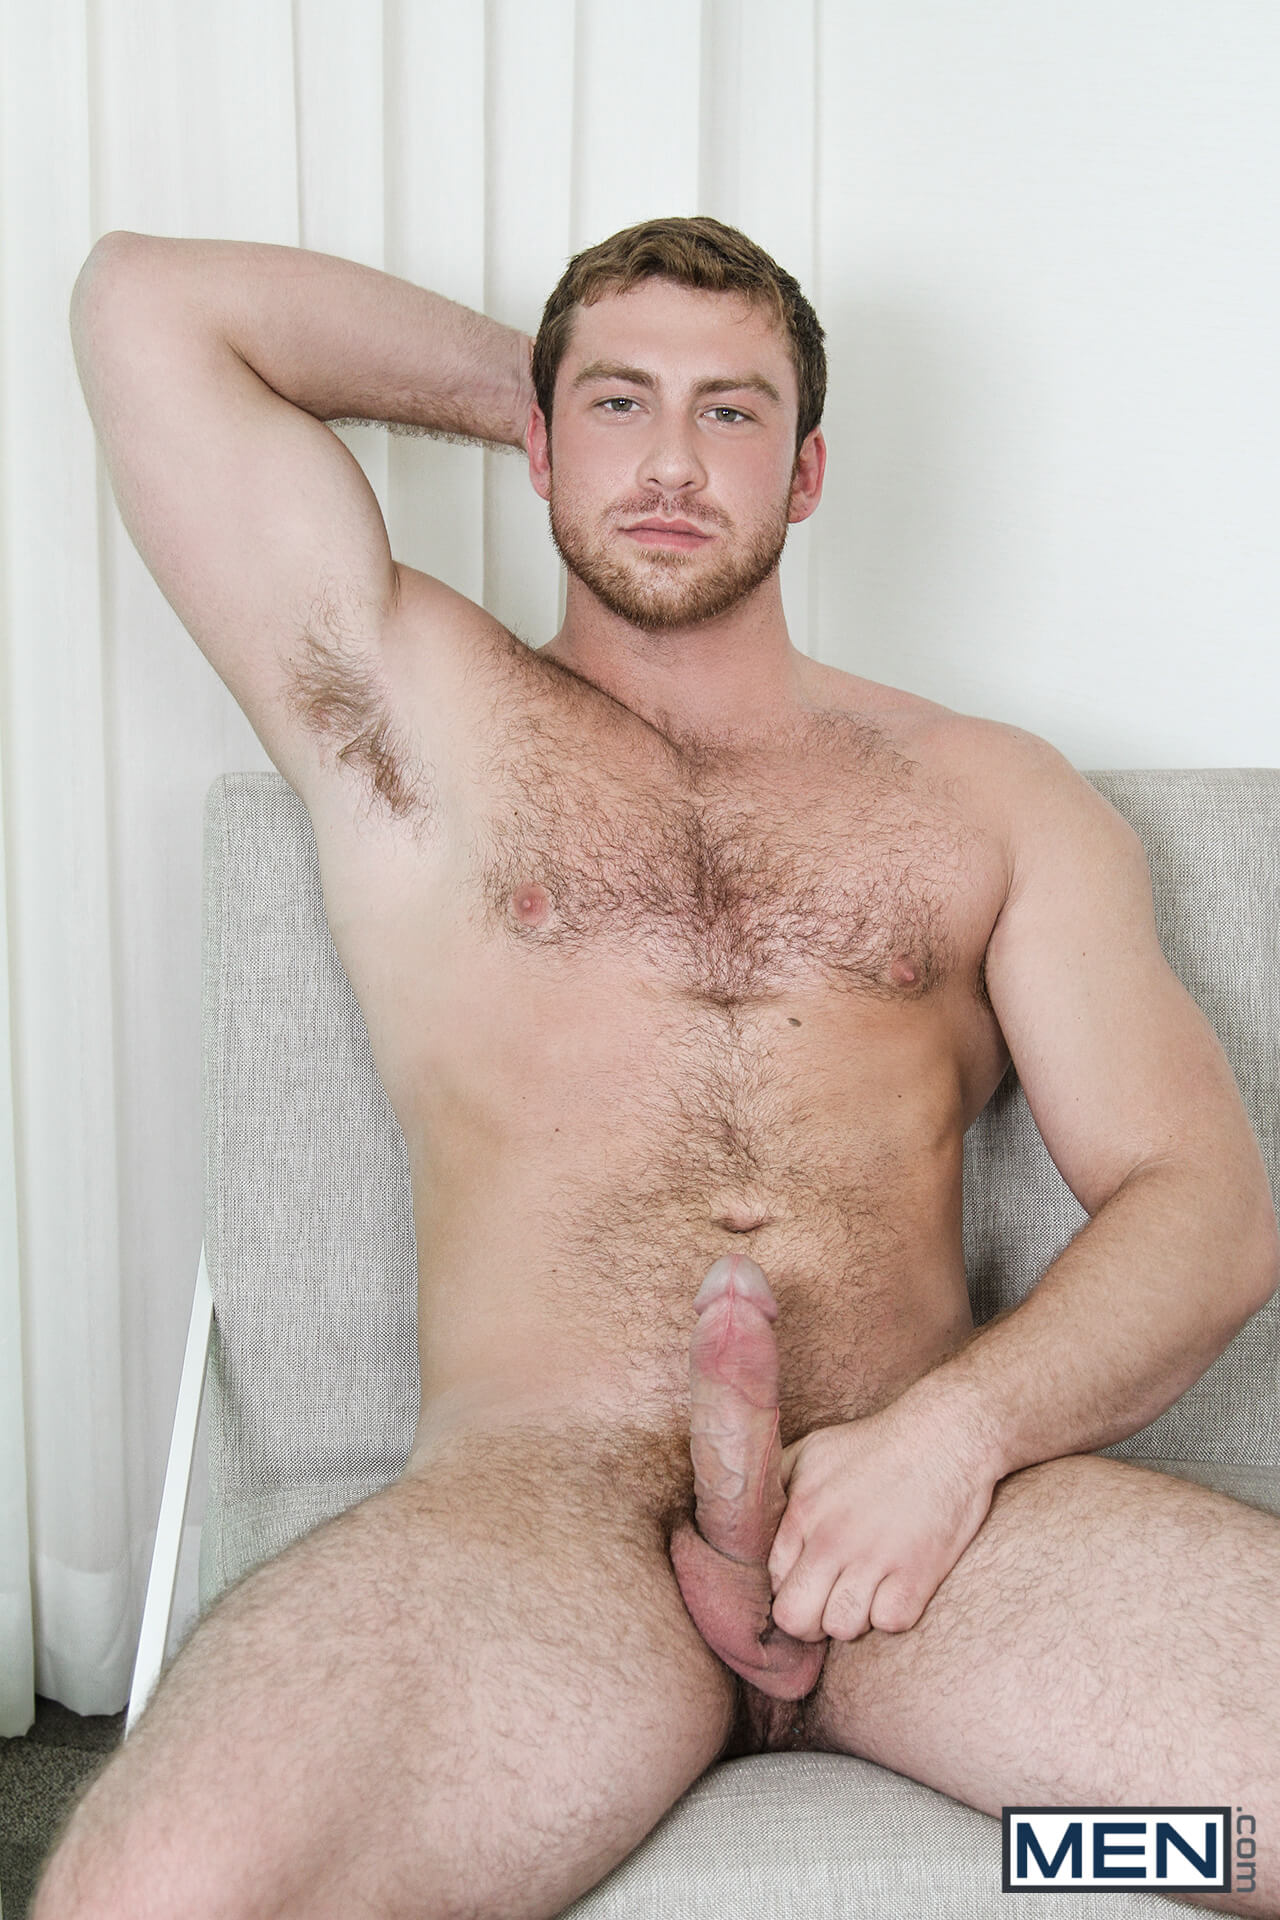 men str8 to gay his royal highness part 2 connor maguire jack hunter gay porn blog image 8